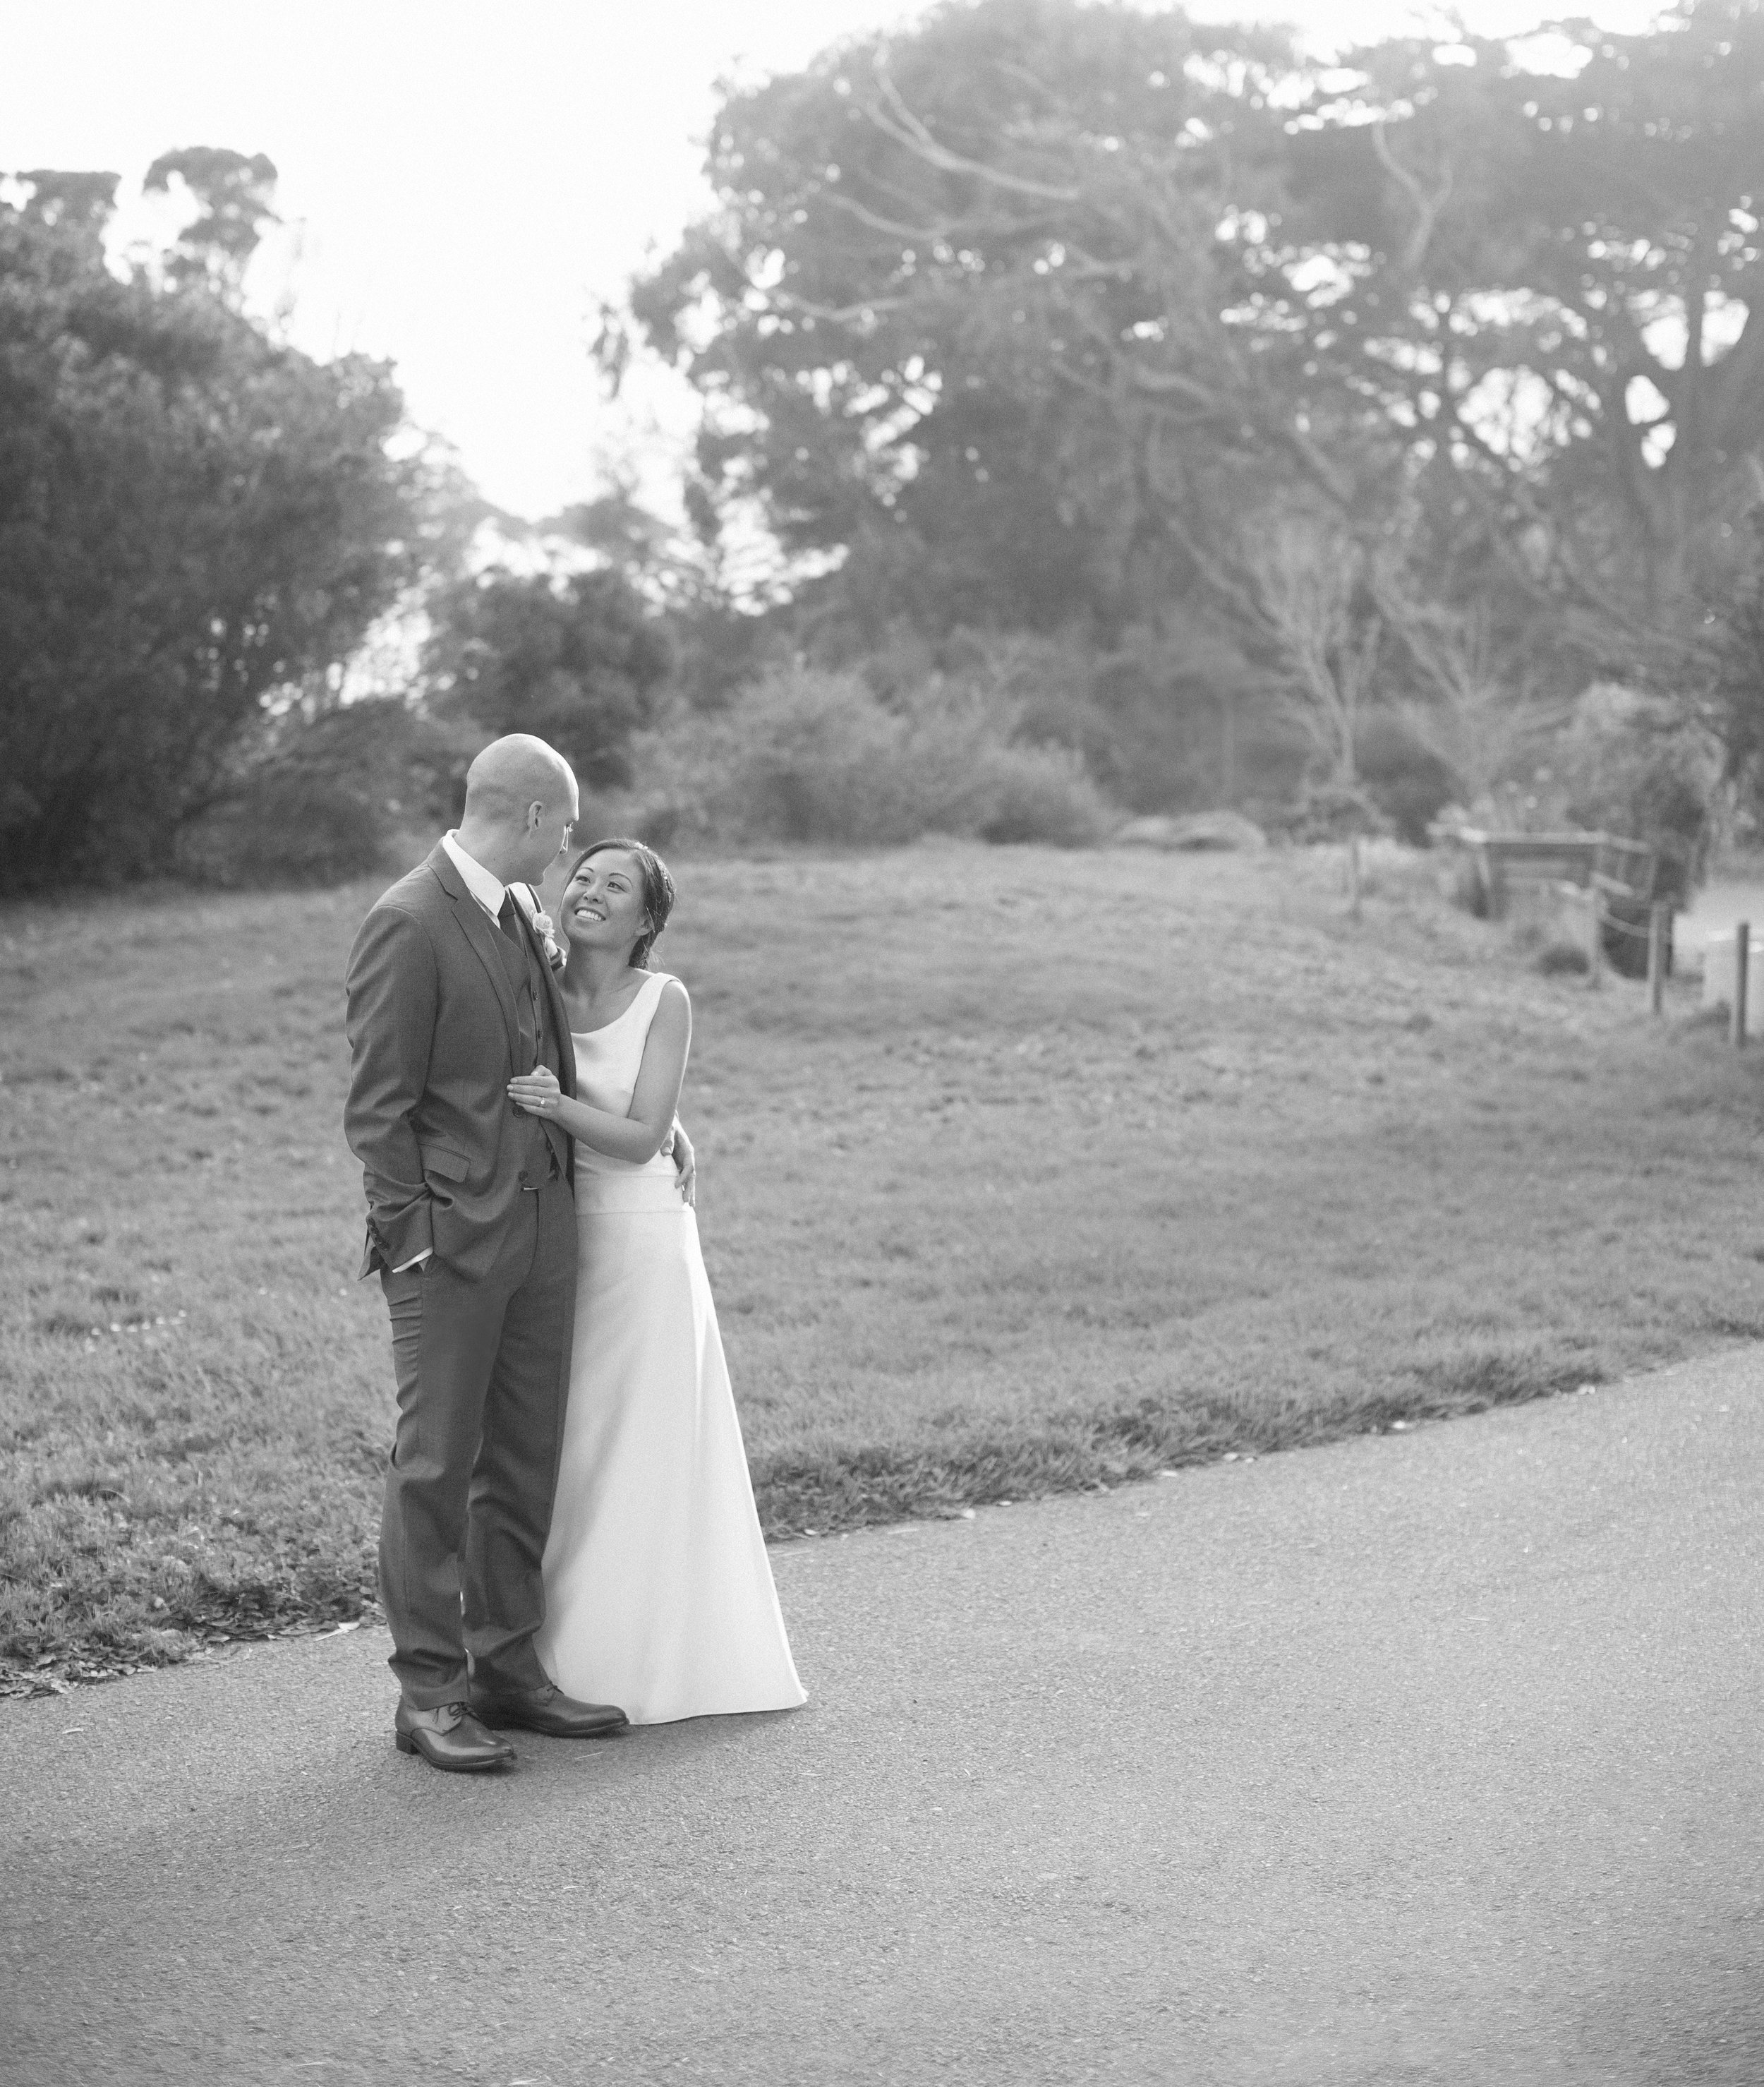 kmulhern_photography_tyler_and_amy_wedding_DEC_2016_314.jpg